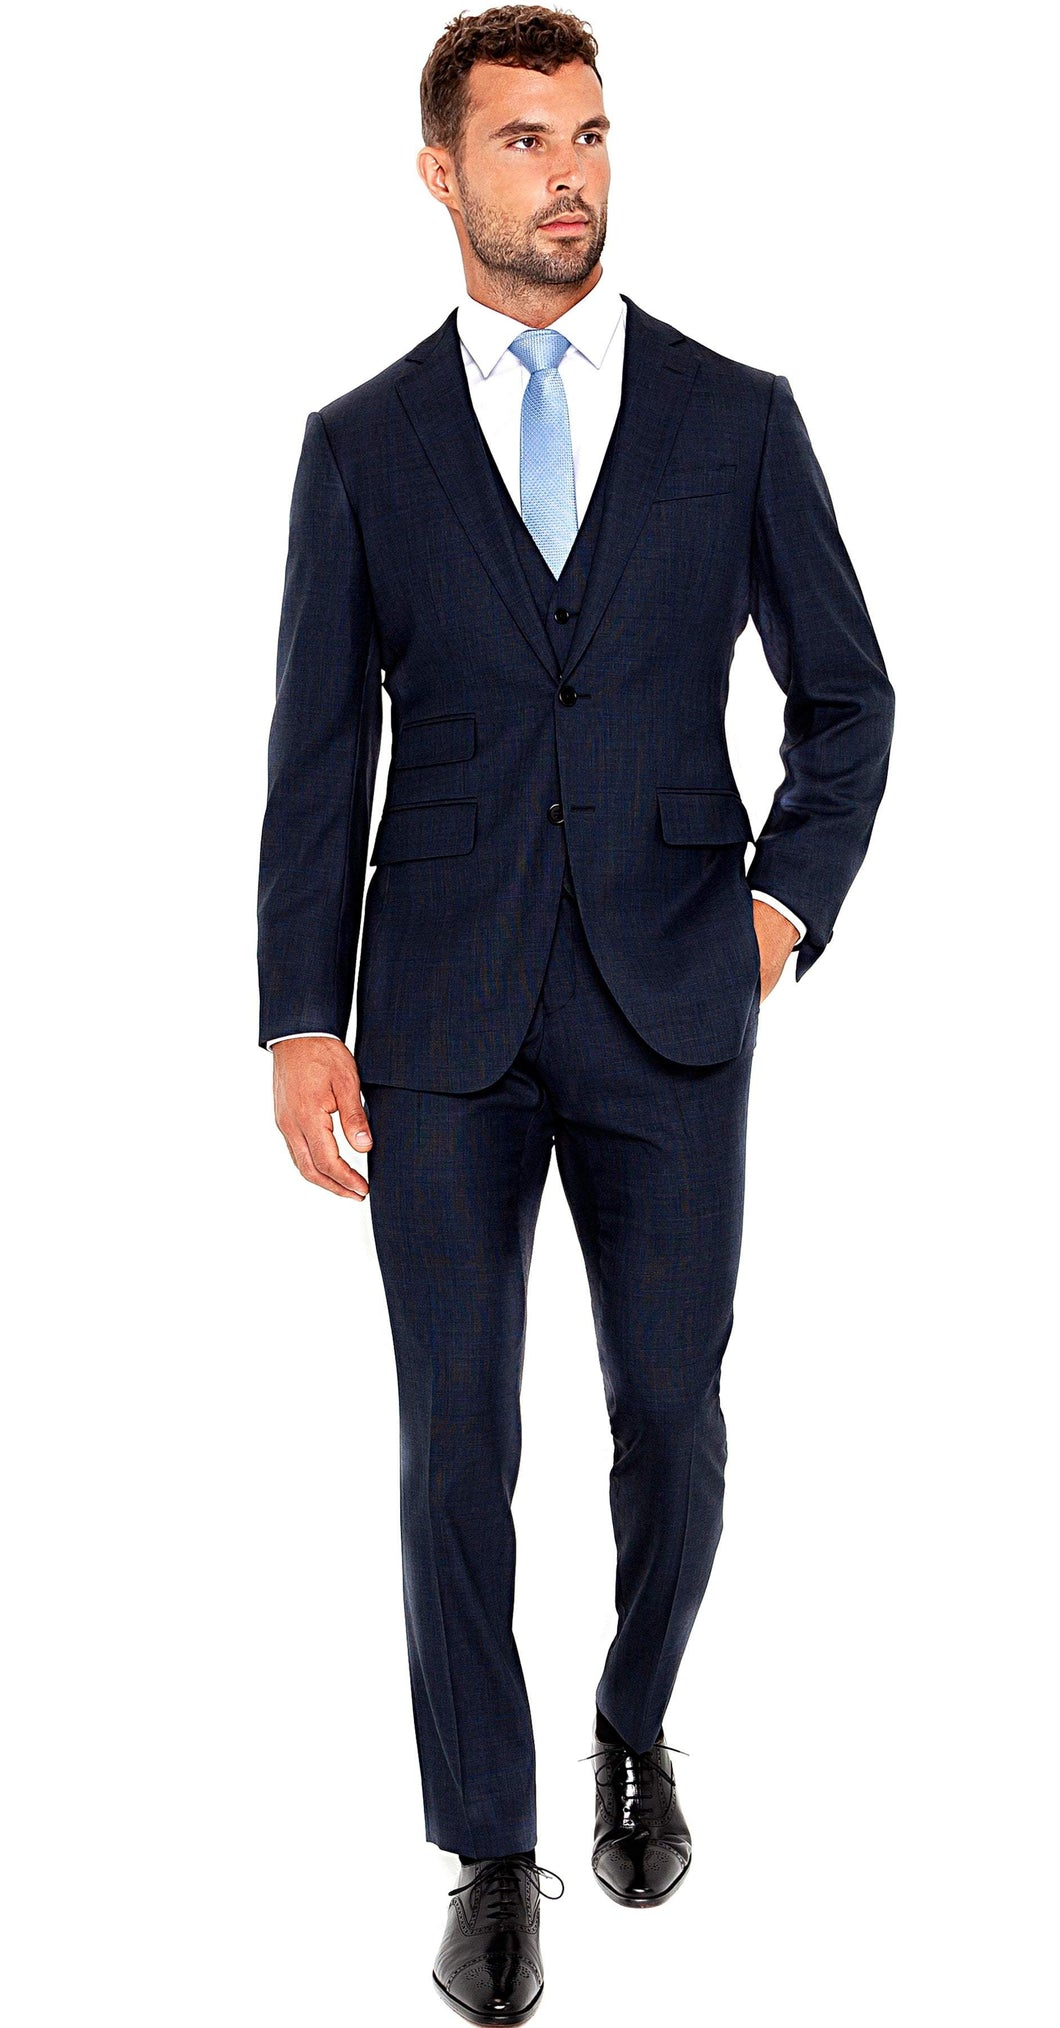 Enzo Sartori Suit Super 150s 3-Piece Blue Plaid Suit